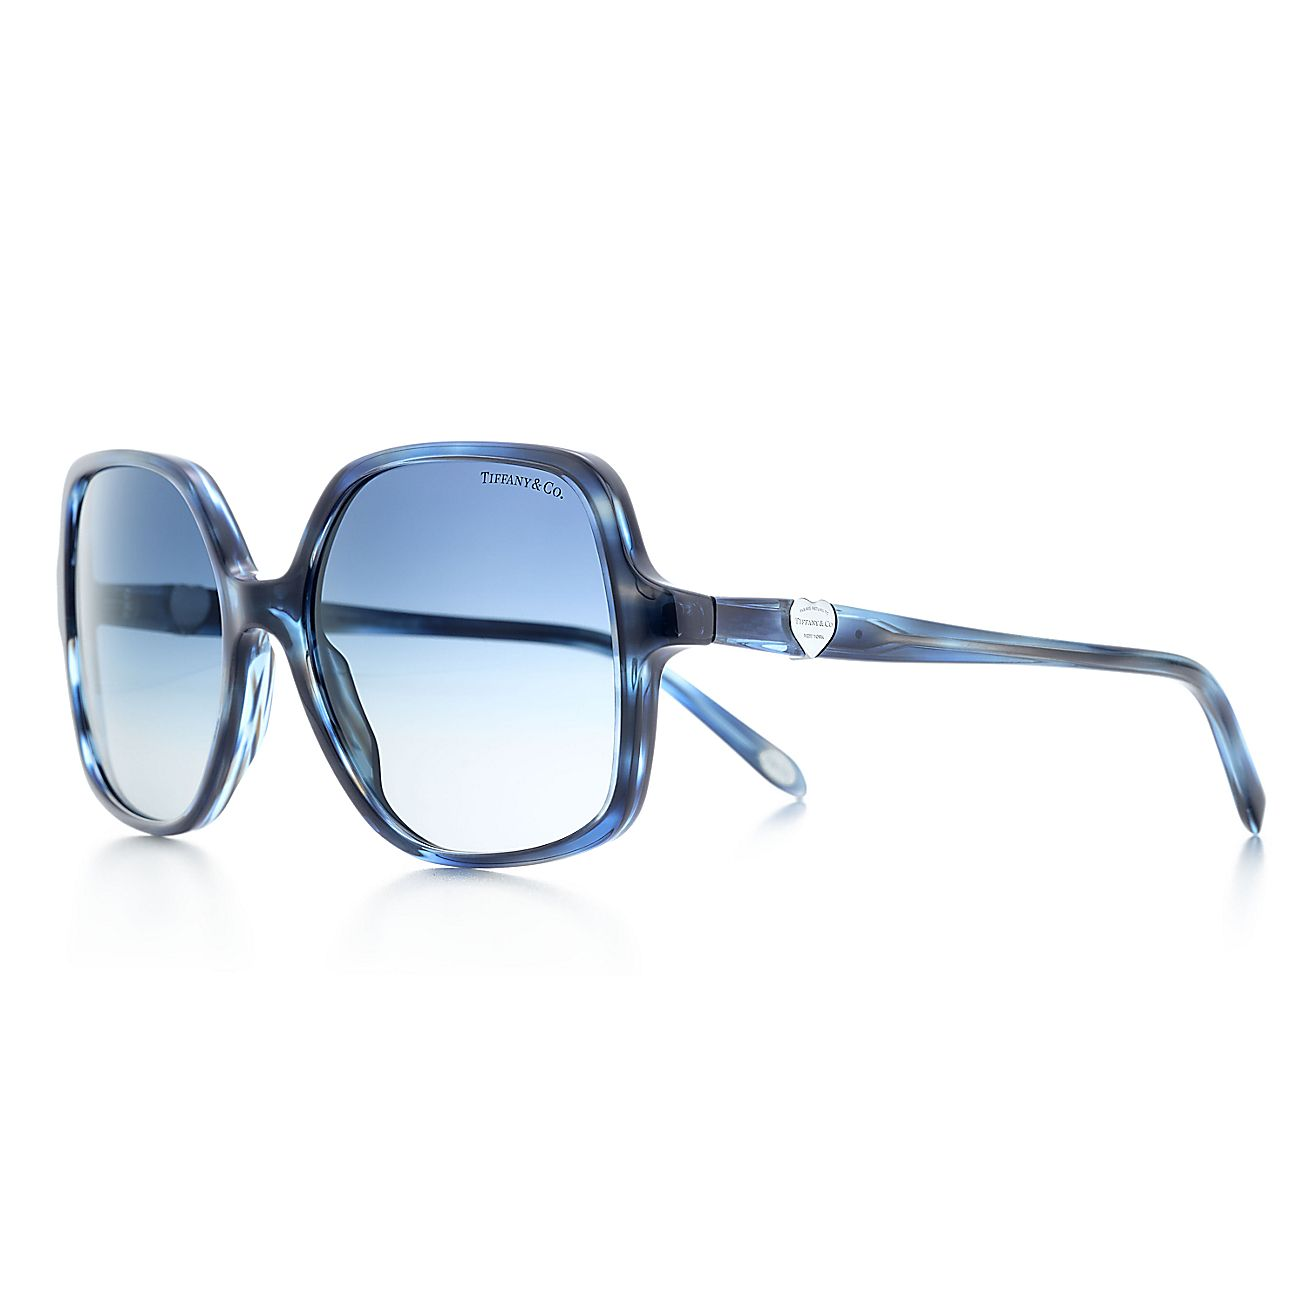 1593d4e029 Return to Tiffany™ square sunglasses in ocean blue and black acetate.